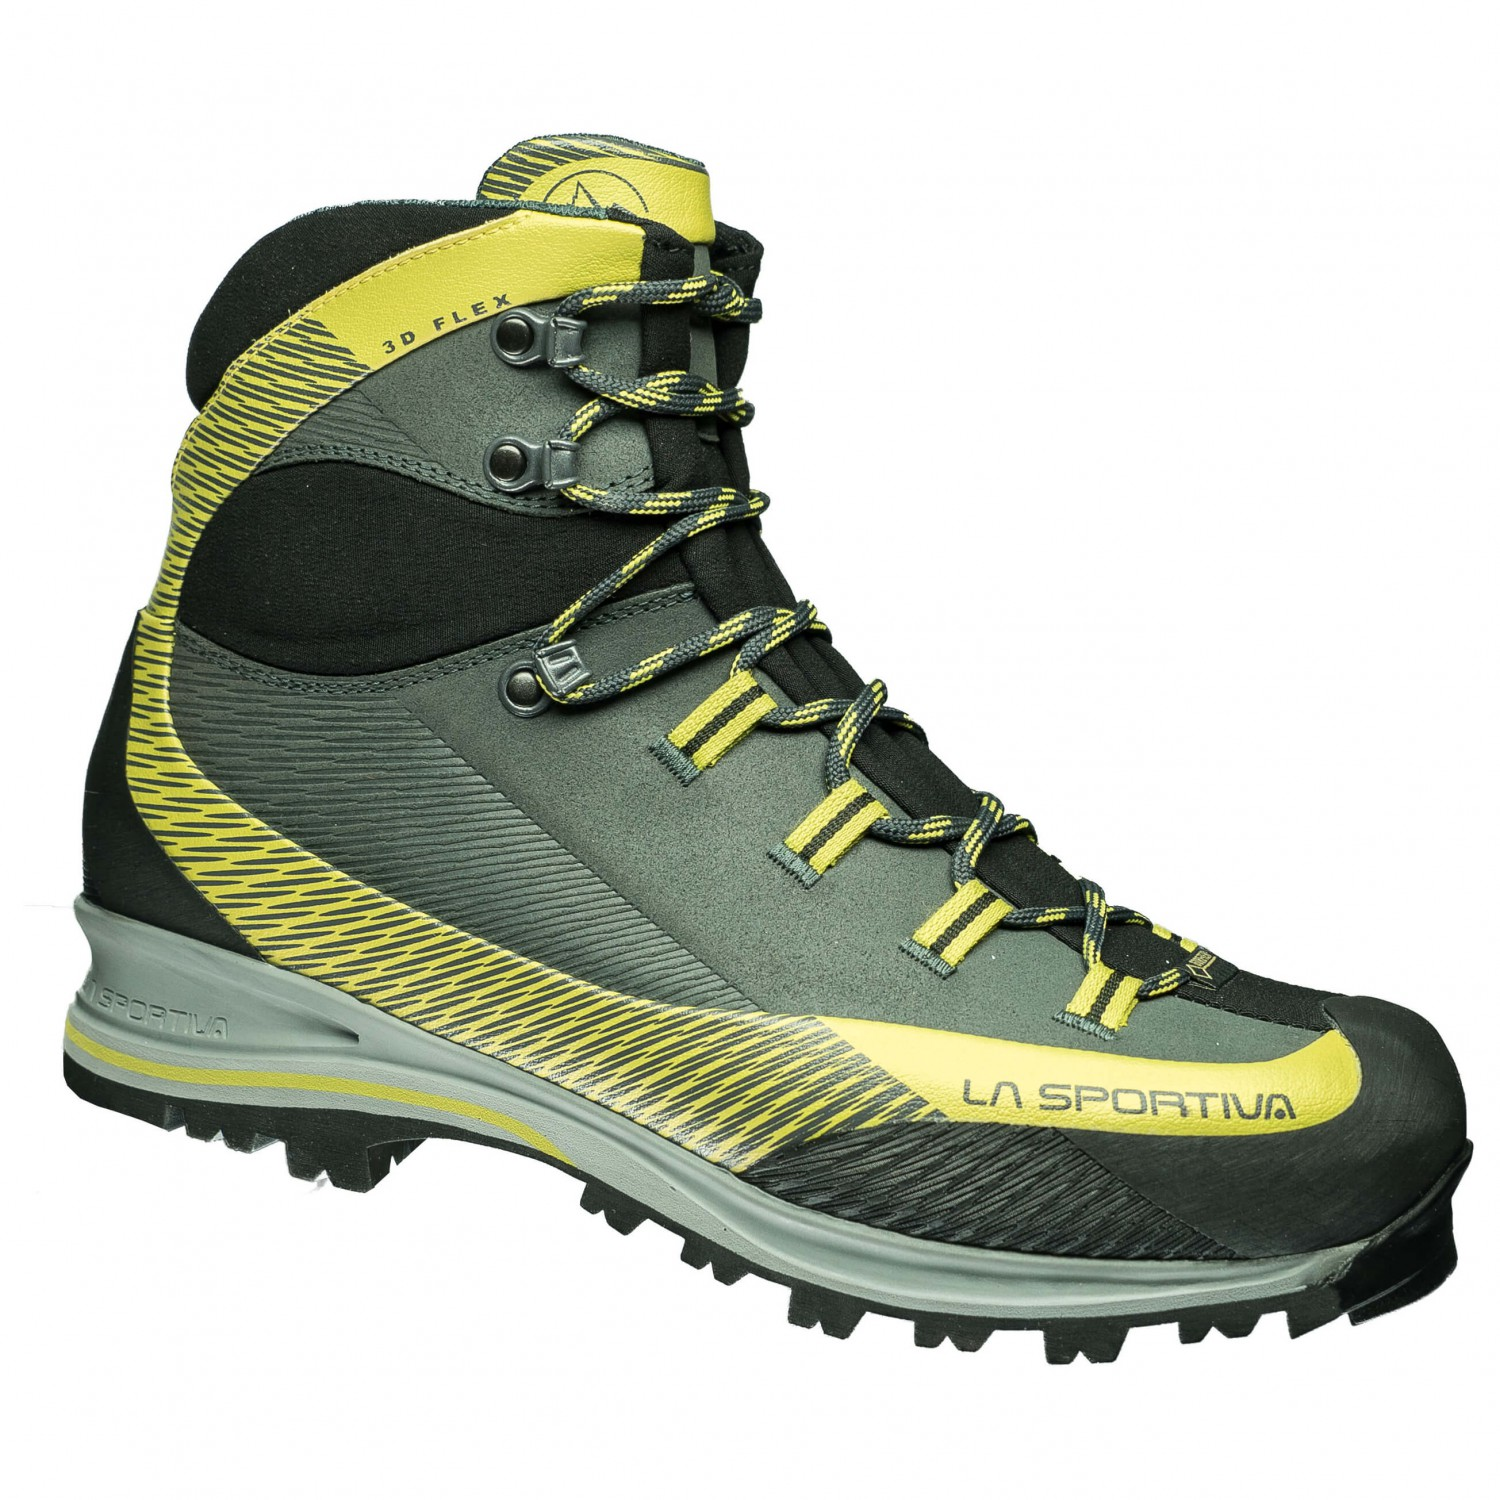 La Sportiva - Trango TRK Leather GTX - Wanderschuhe Carbon / Green